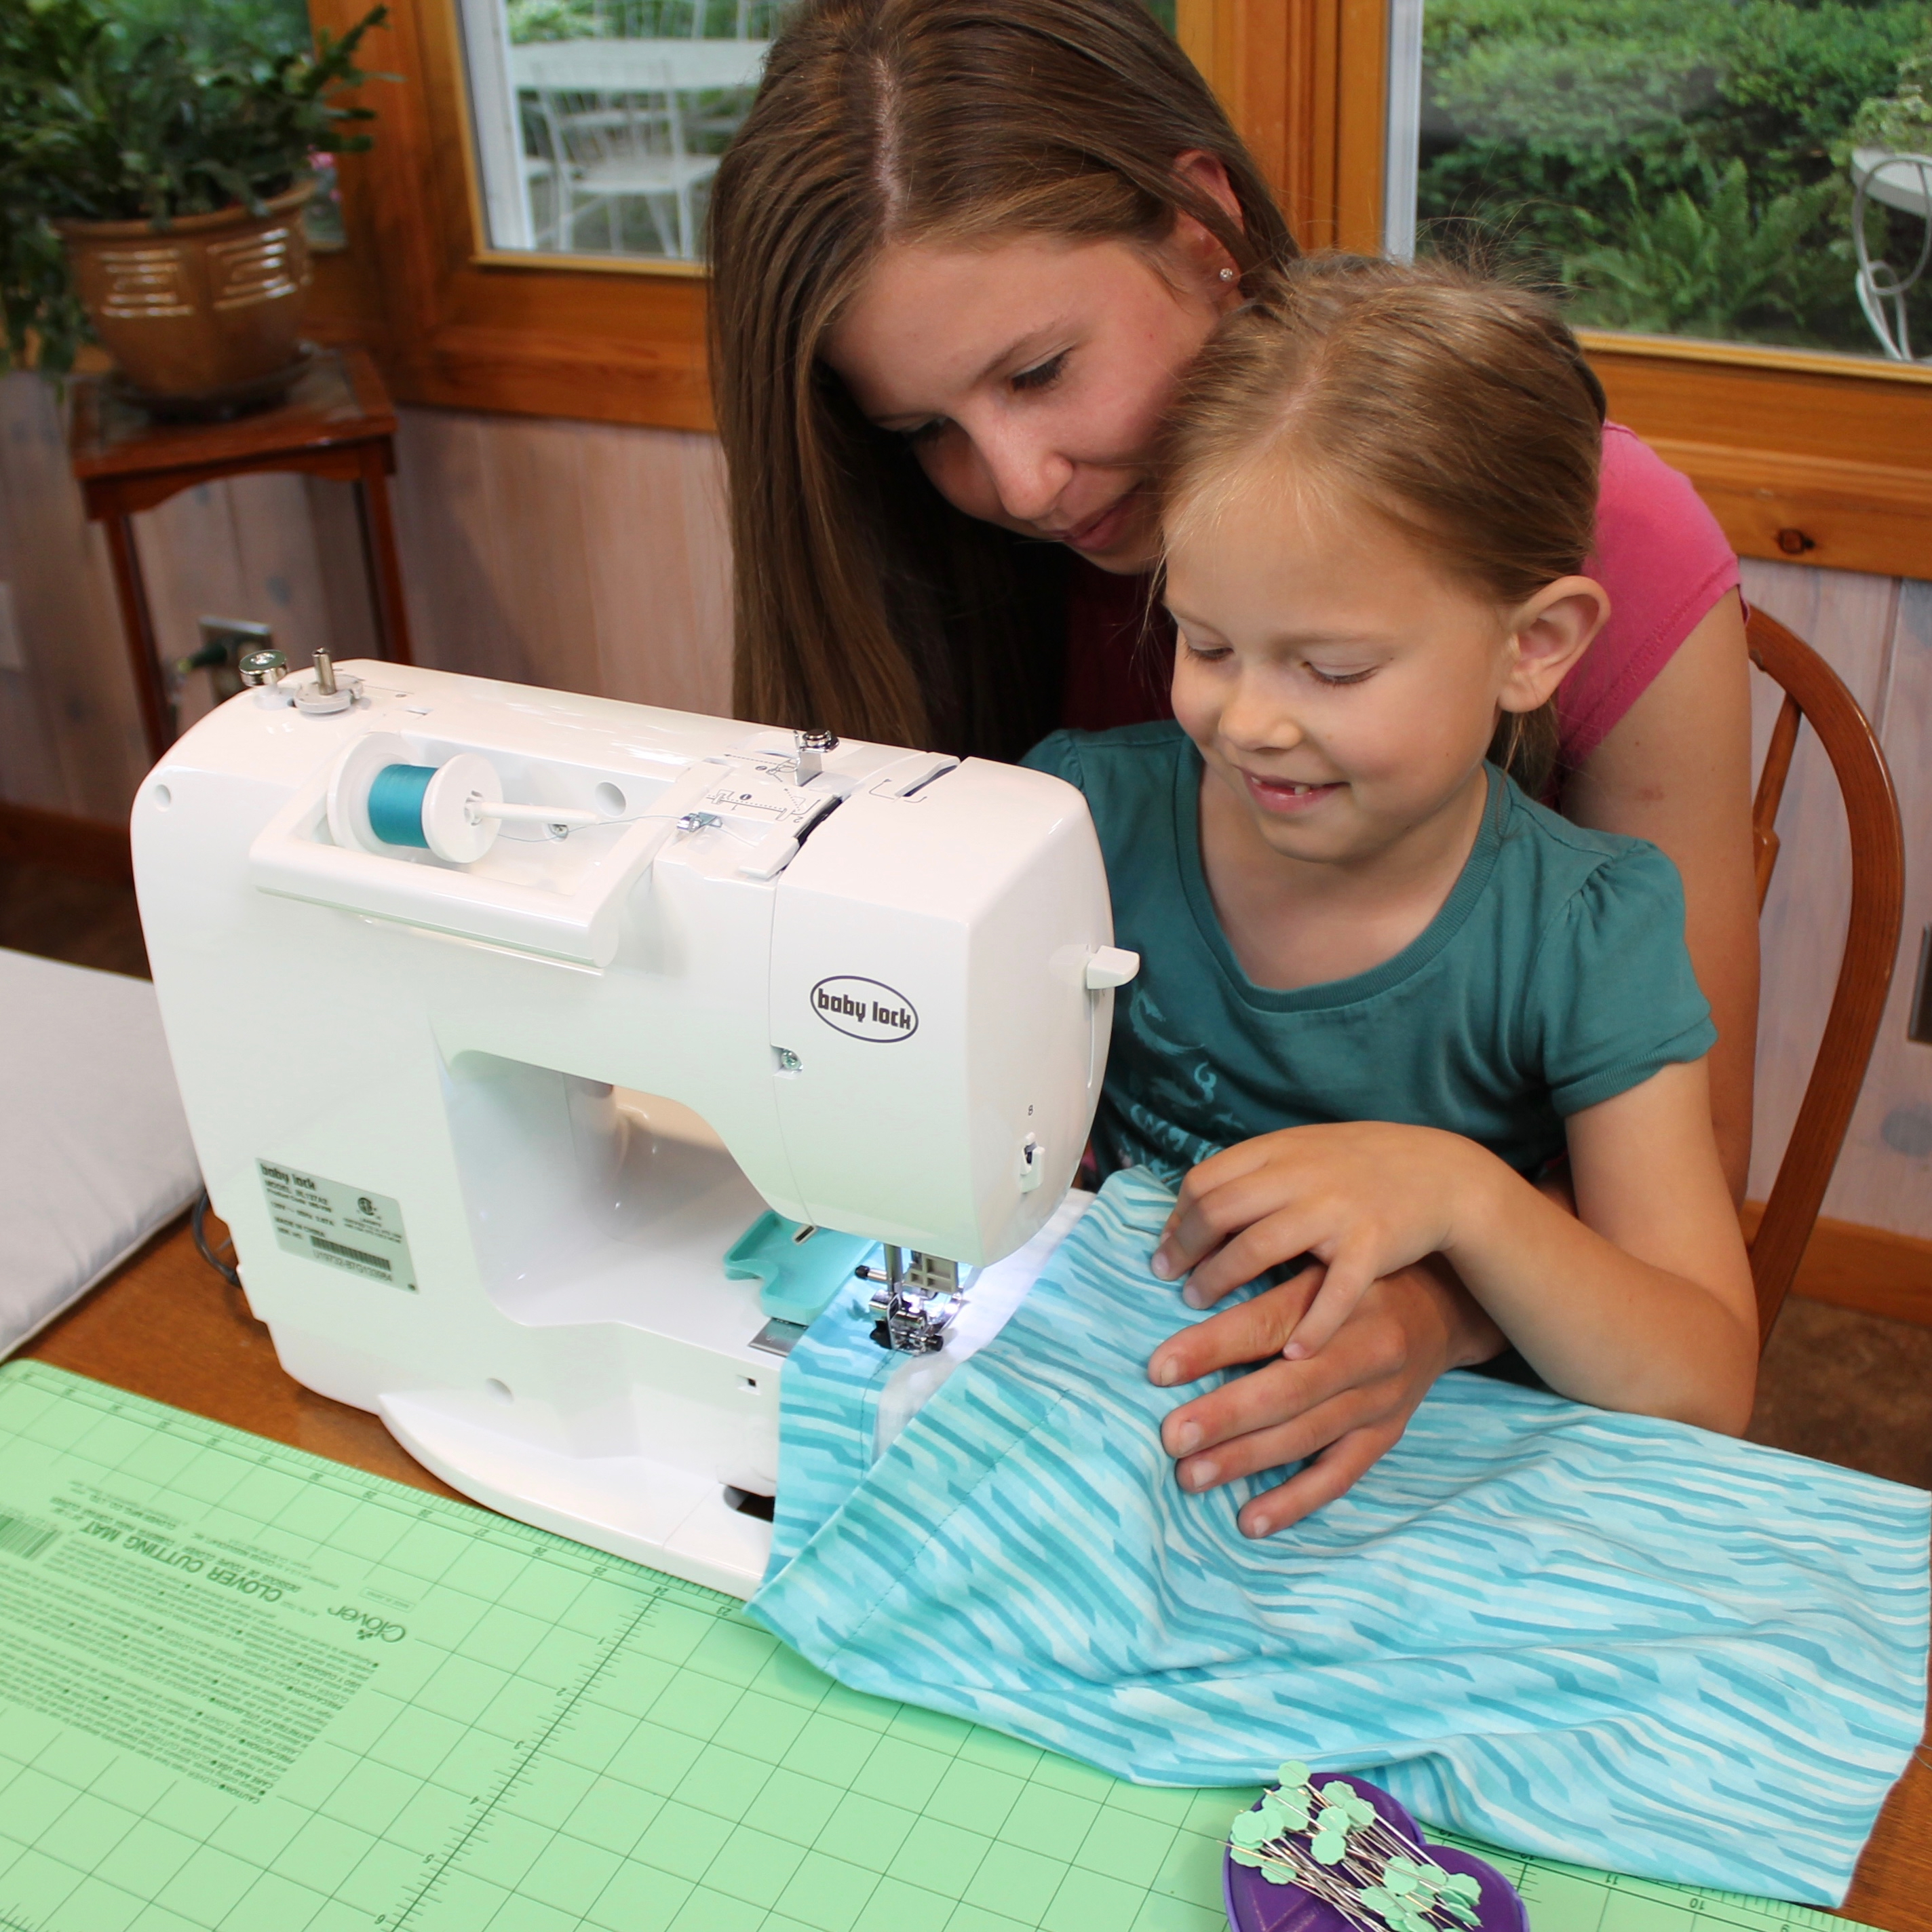 I Sew For Fun Super Simple Skirt Sewing Tutorial at The Nancy Zieman Producitons Blog